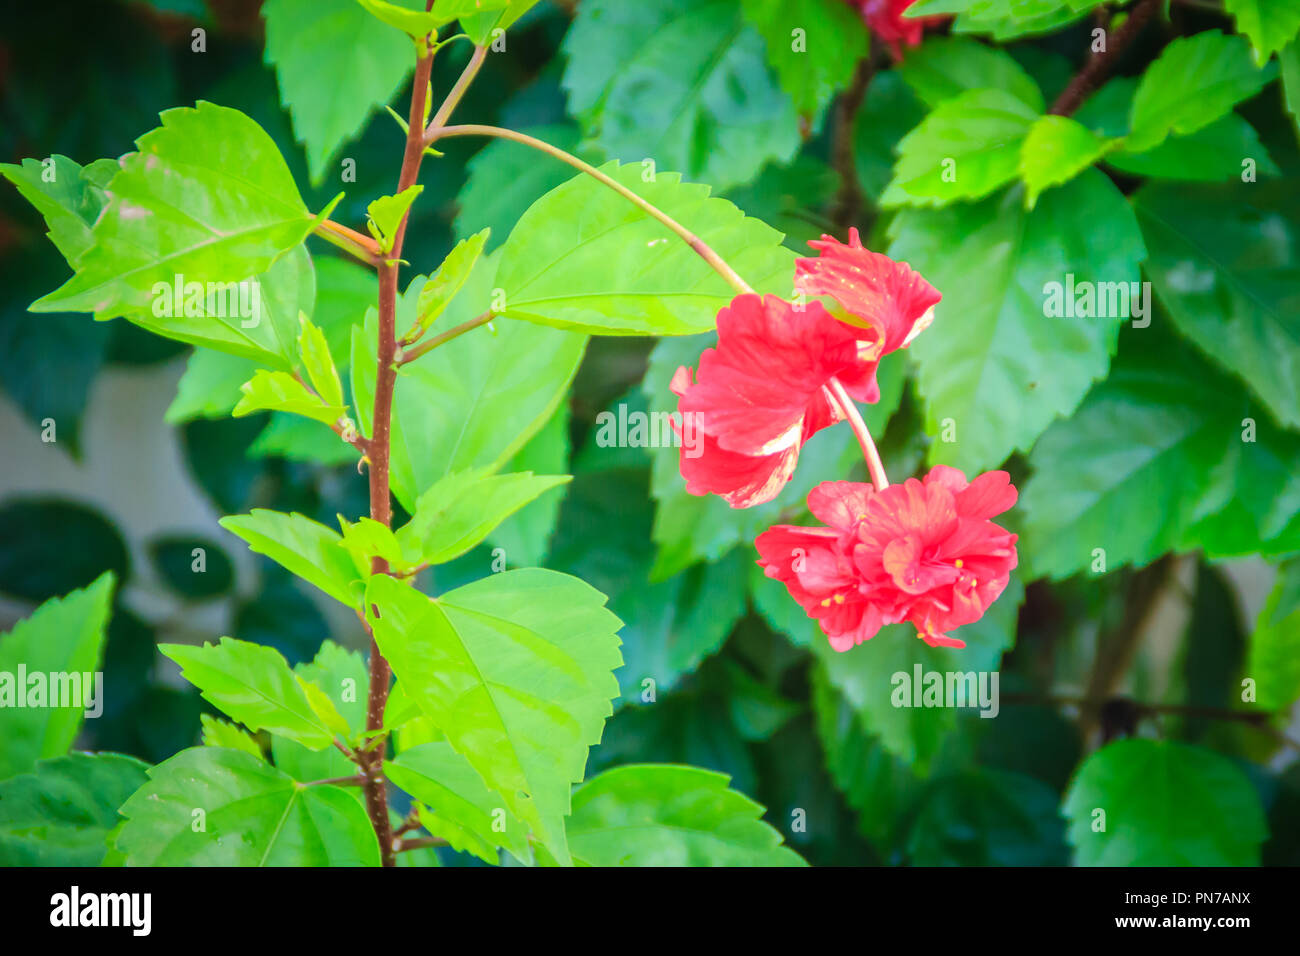 Red double petal vermillion flower of hybrid Hibiscus rosa-sinensis, also known as Chinese hibiscus, China rose, Hawaiian hibiscus, and shoeblackplant Stock Photo